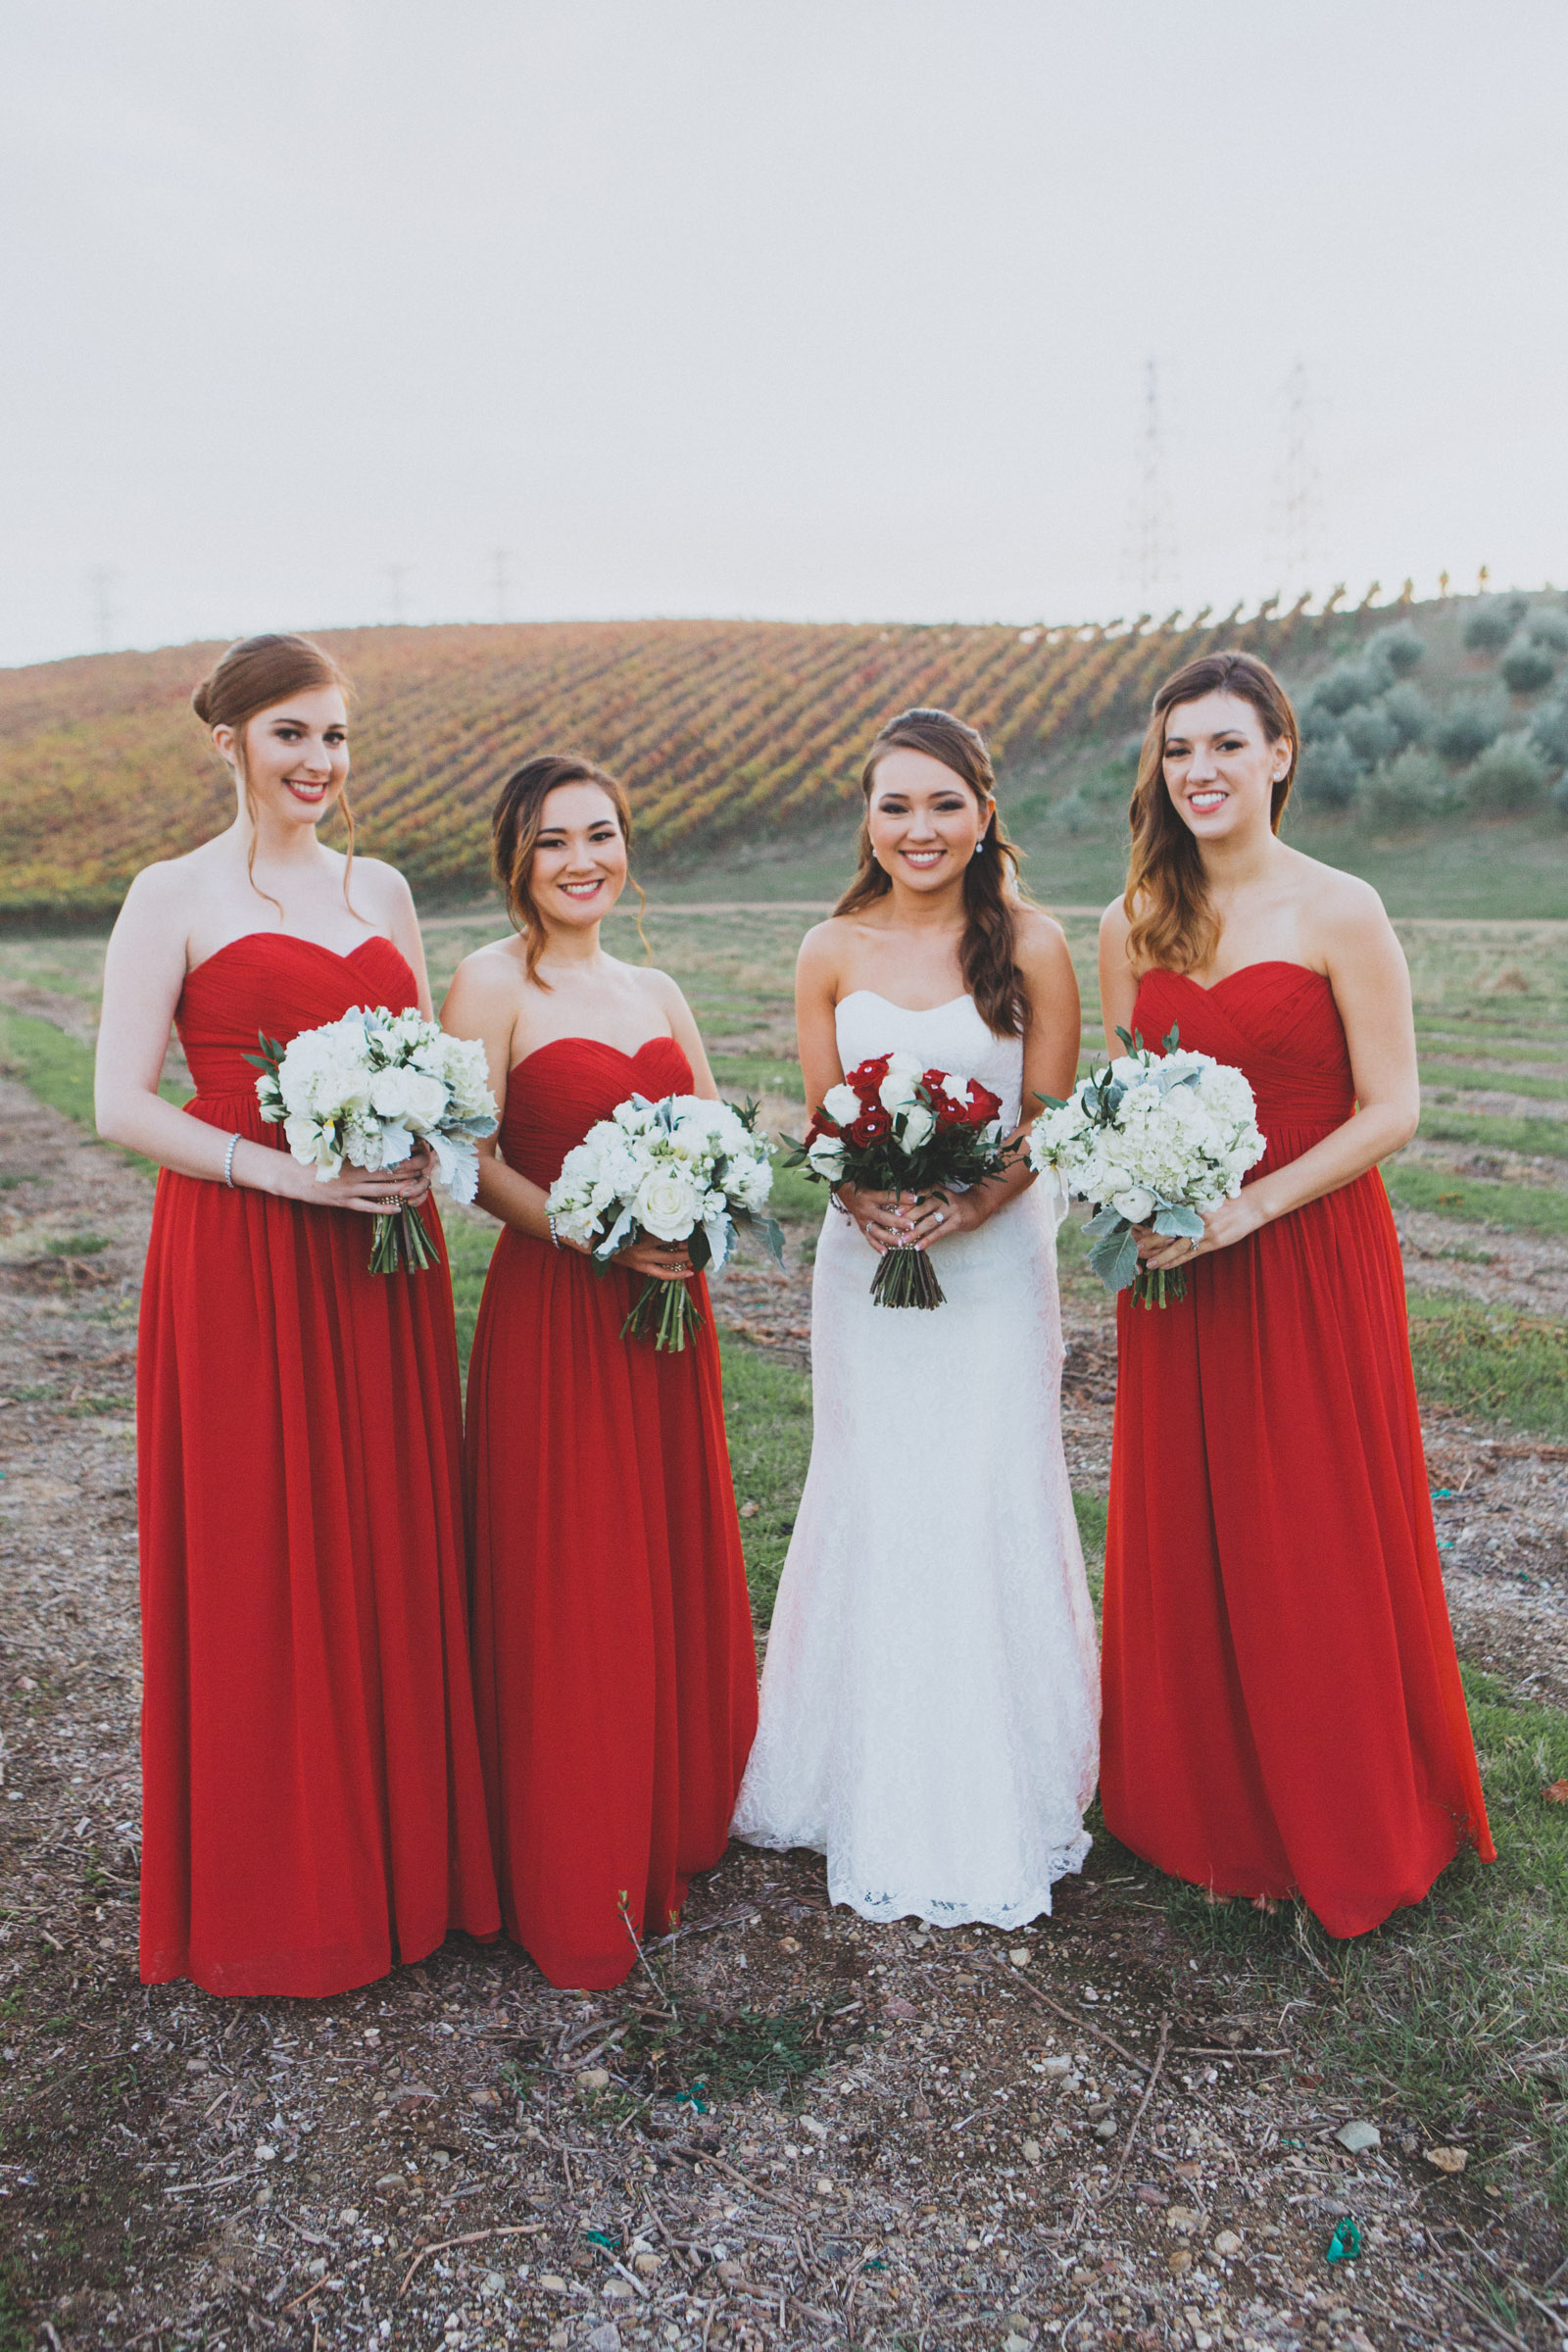 & the beautiful bridesmaids